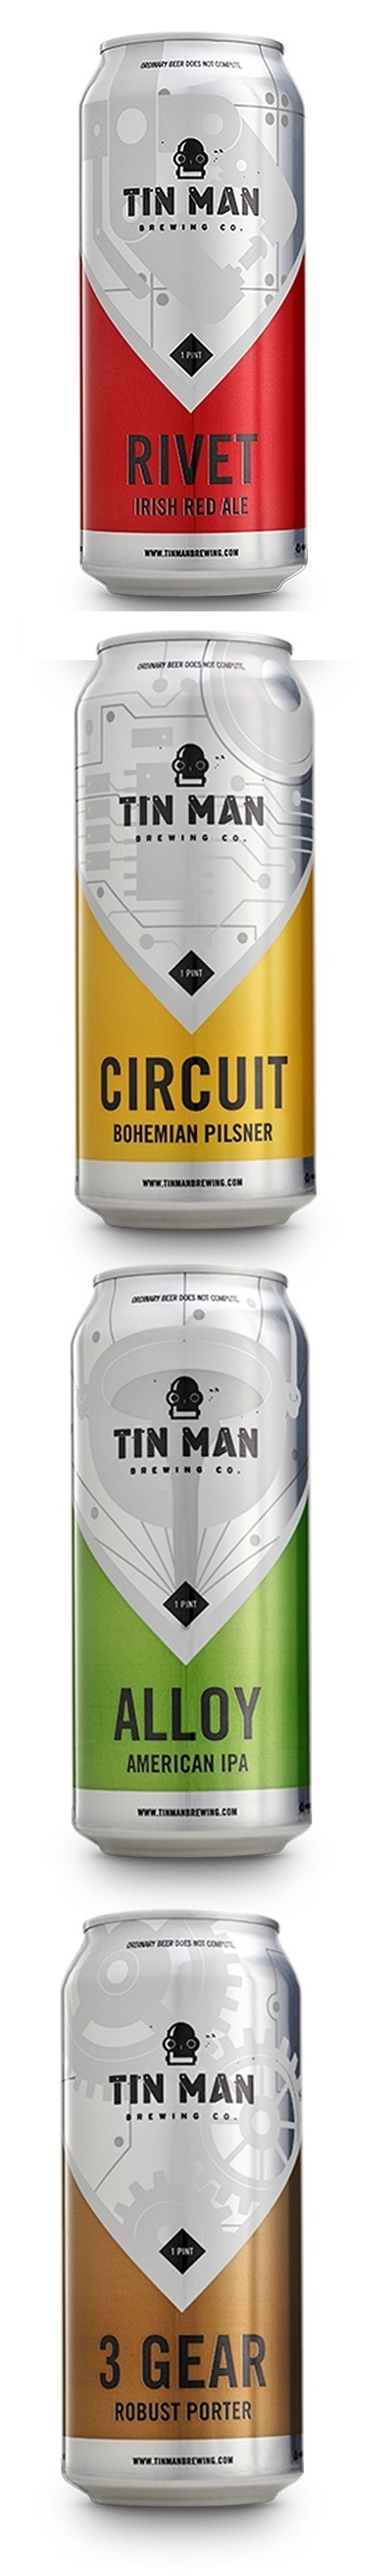 Tin Man Brewing Company's beer cans #design #packaging #beer